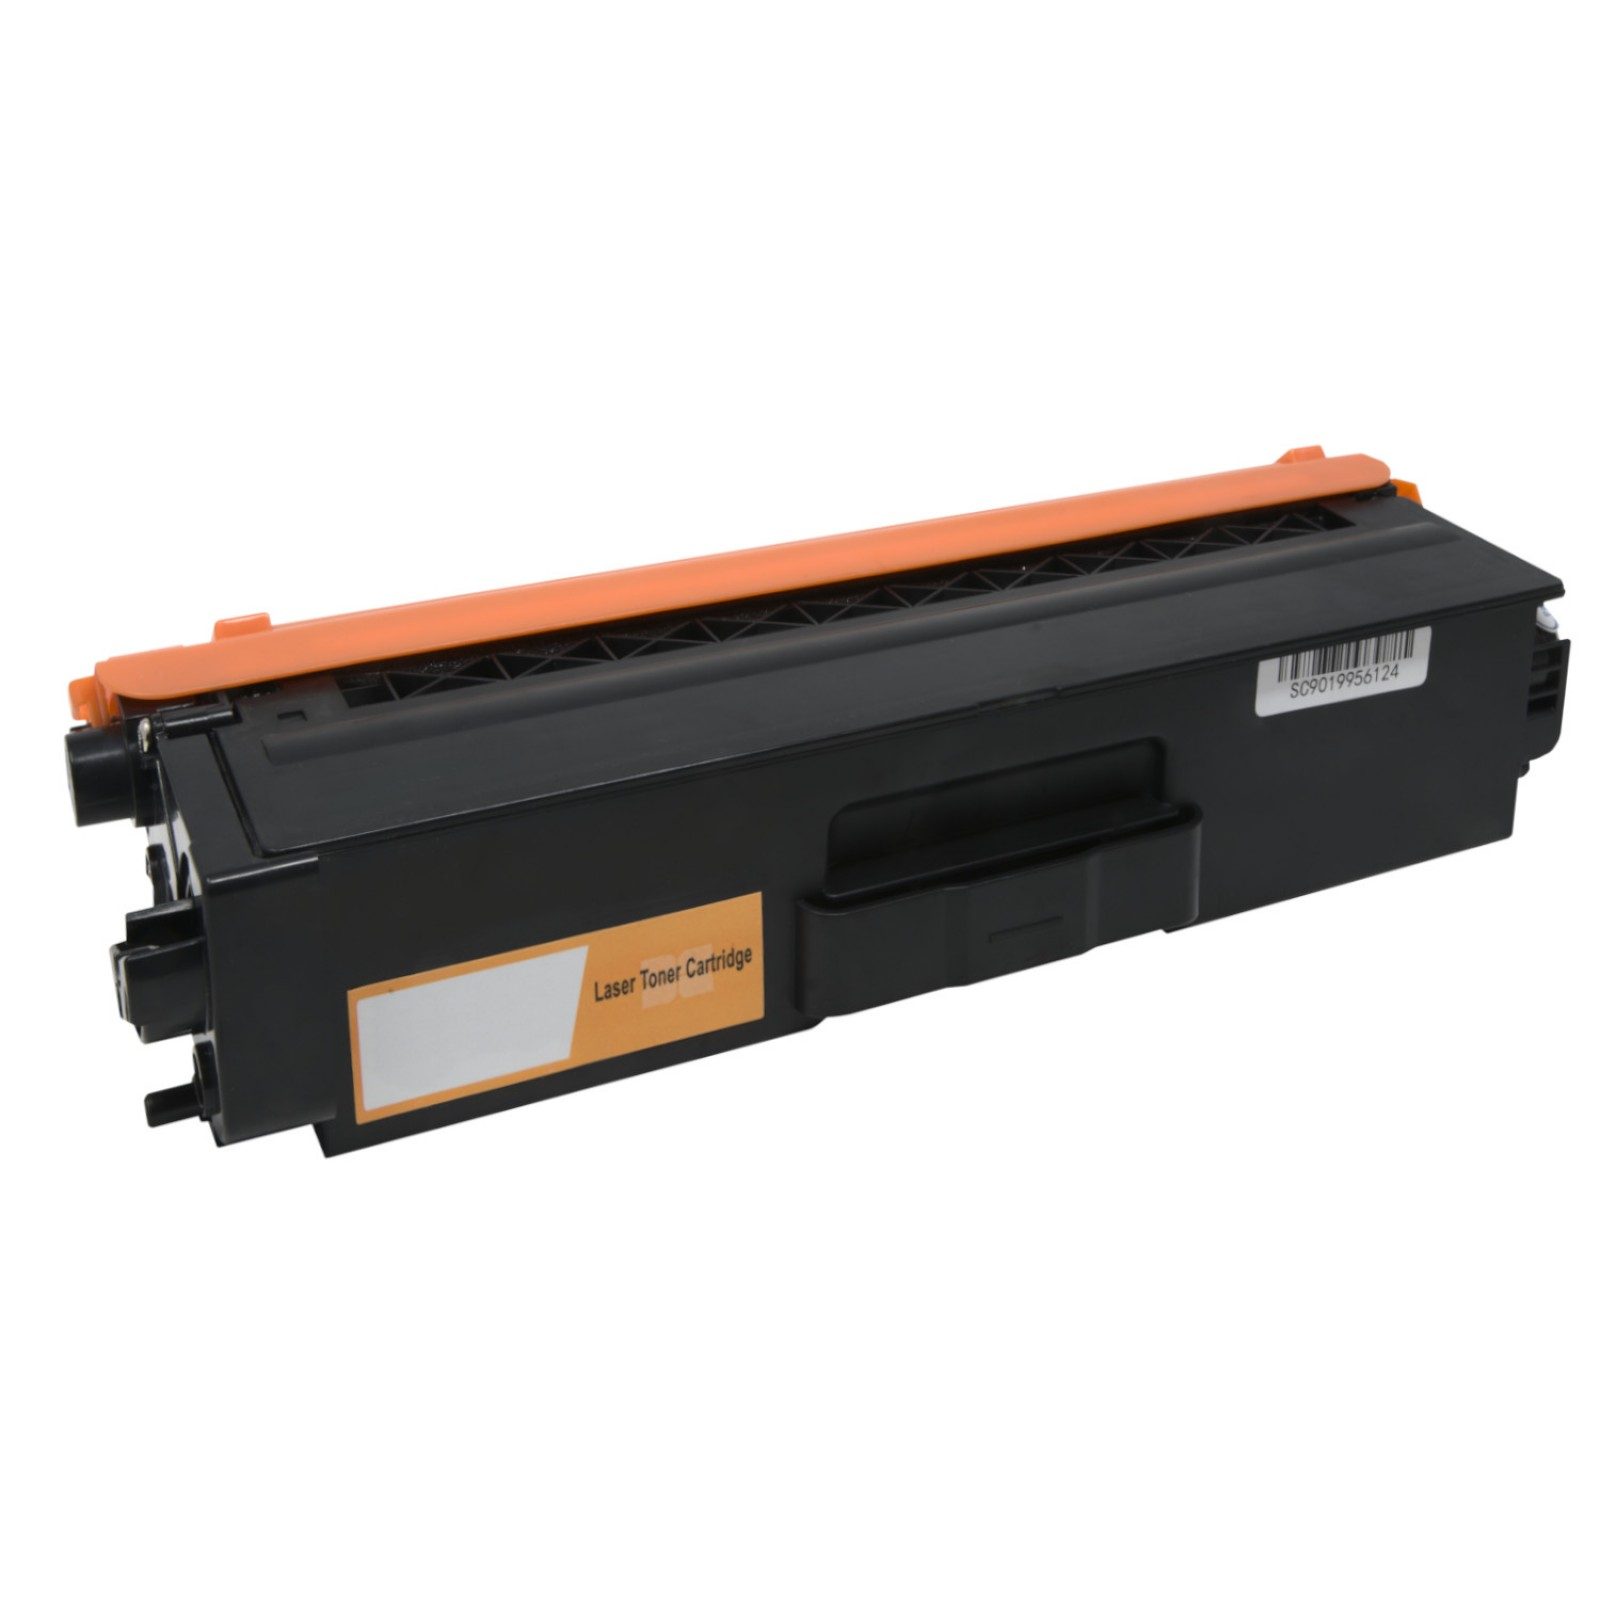 Toner alternativ zu Brother TN-320C, TN-325C für Brother Drucker Cyan